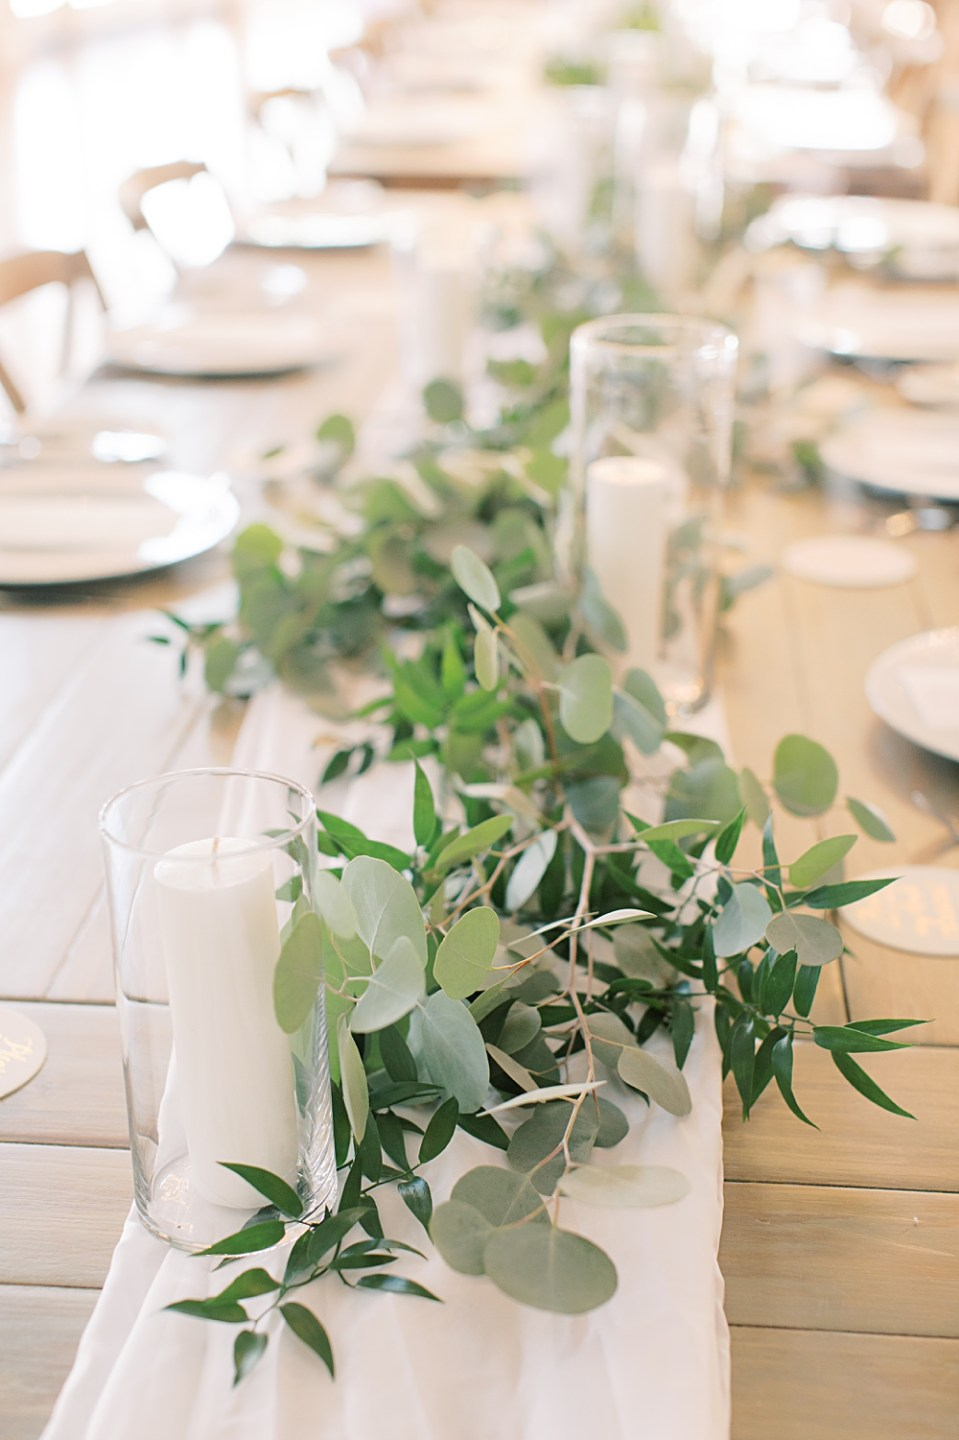 wedding tablescapes with greenery garland | bear brook valley wedding photographer sarah canning